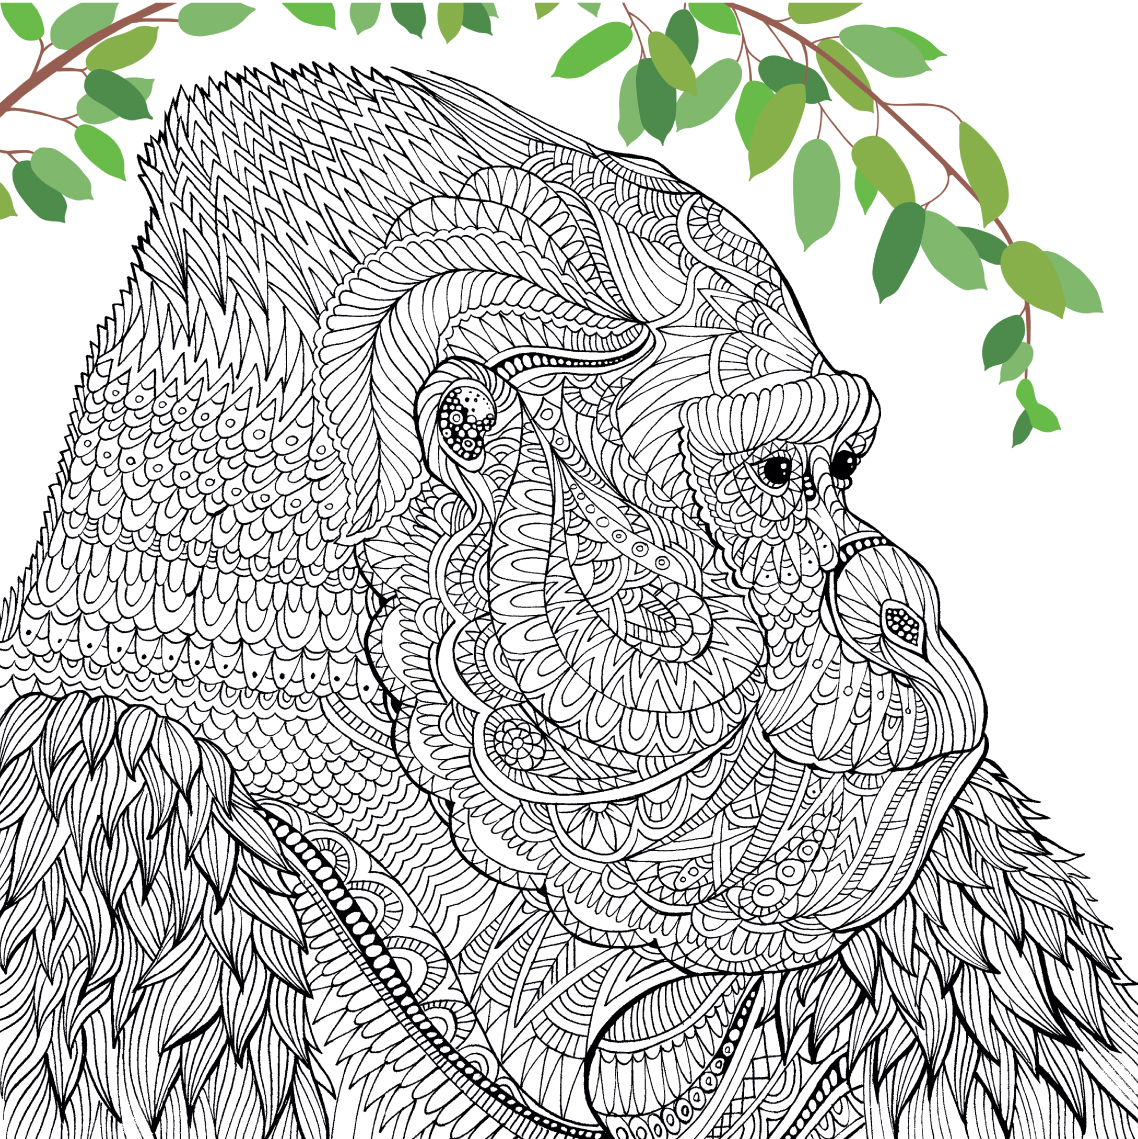 Collouring: 1000+ Images About Adult Coloring Pages\ Animals On